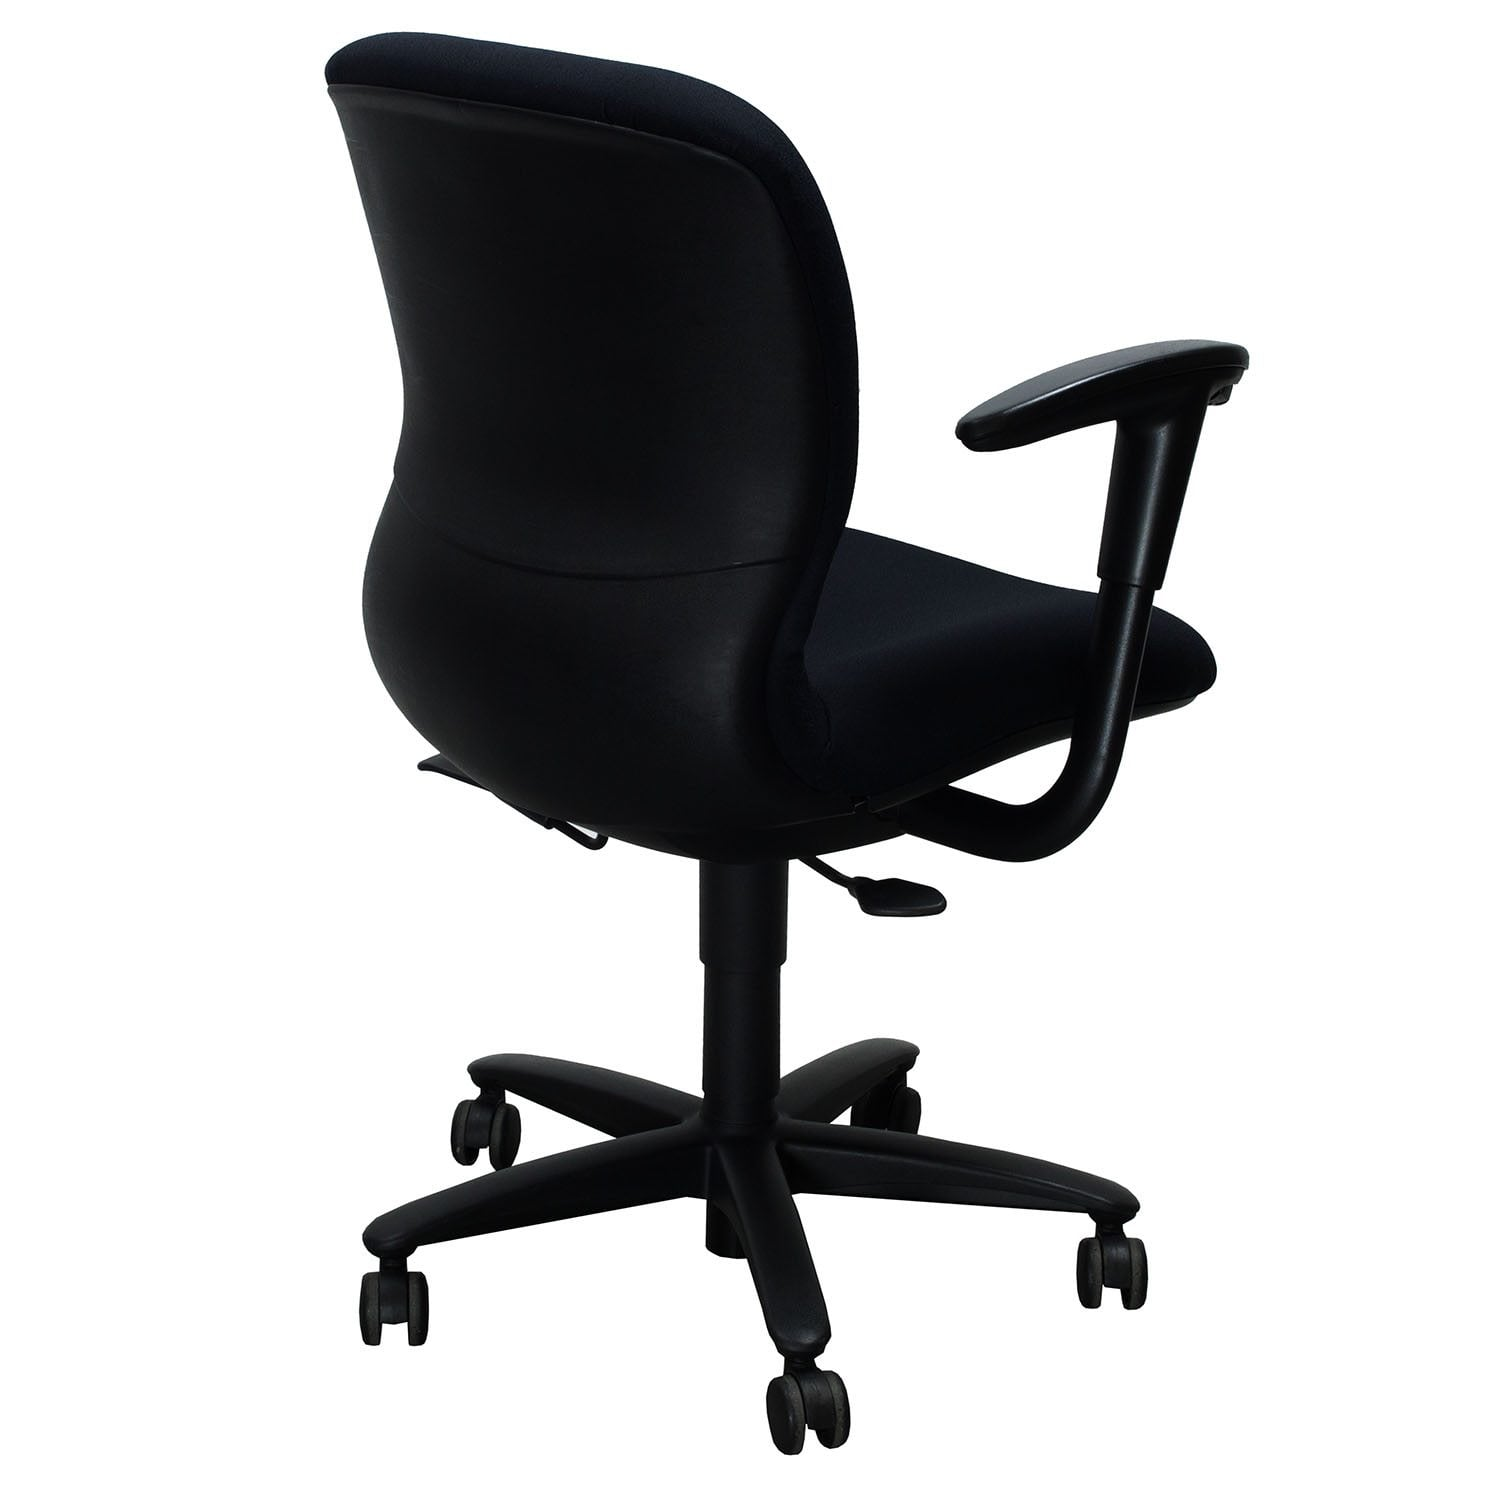 Haworth Improv Desk Used Task Chair Black National